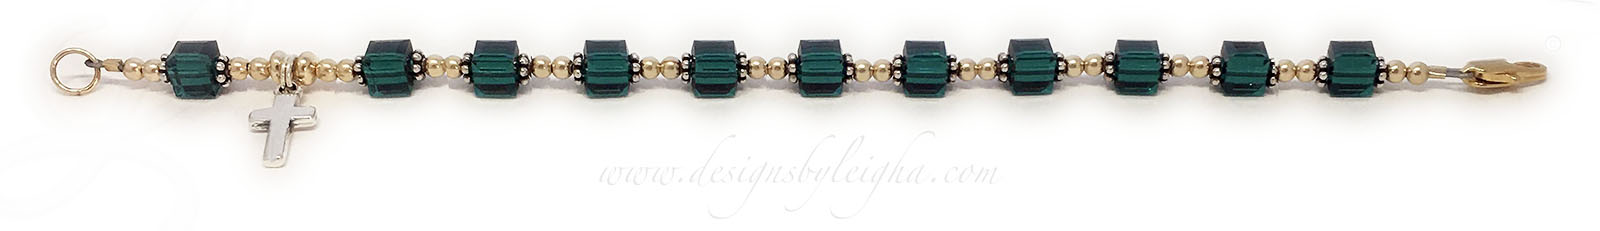 CB - Rosary 3 (14k Gold-filled beads)This Rosary Bracelet is shown with 14k gold-filled beads and 14k gold-plated lobster claw clasp. They picked May or Emerald 6mm Square Birthstone Crystals.